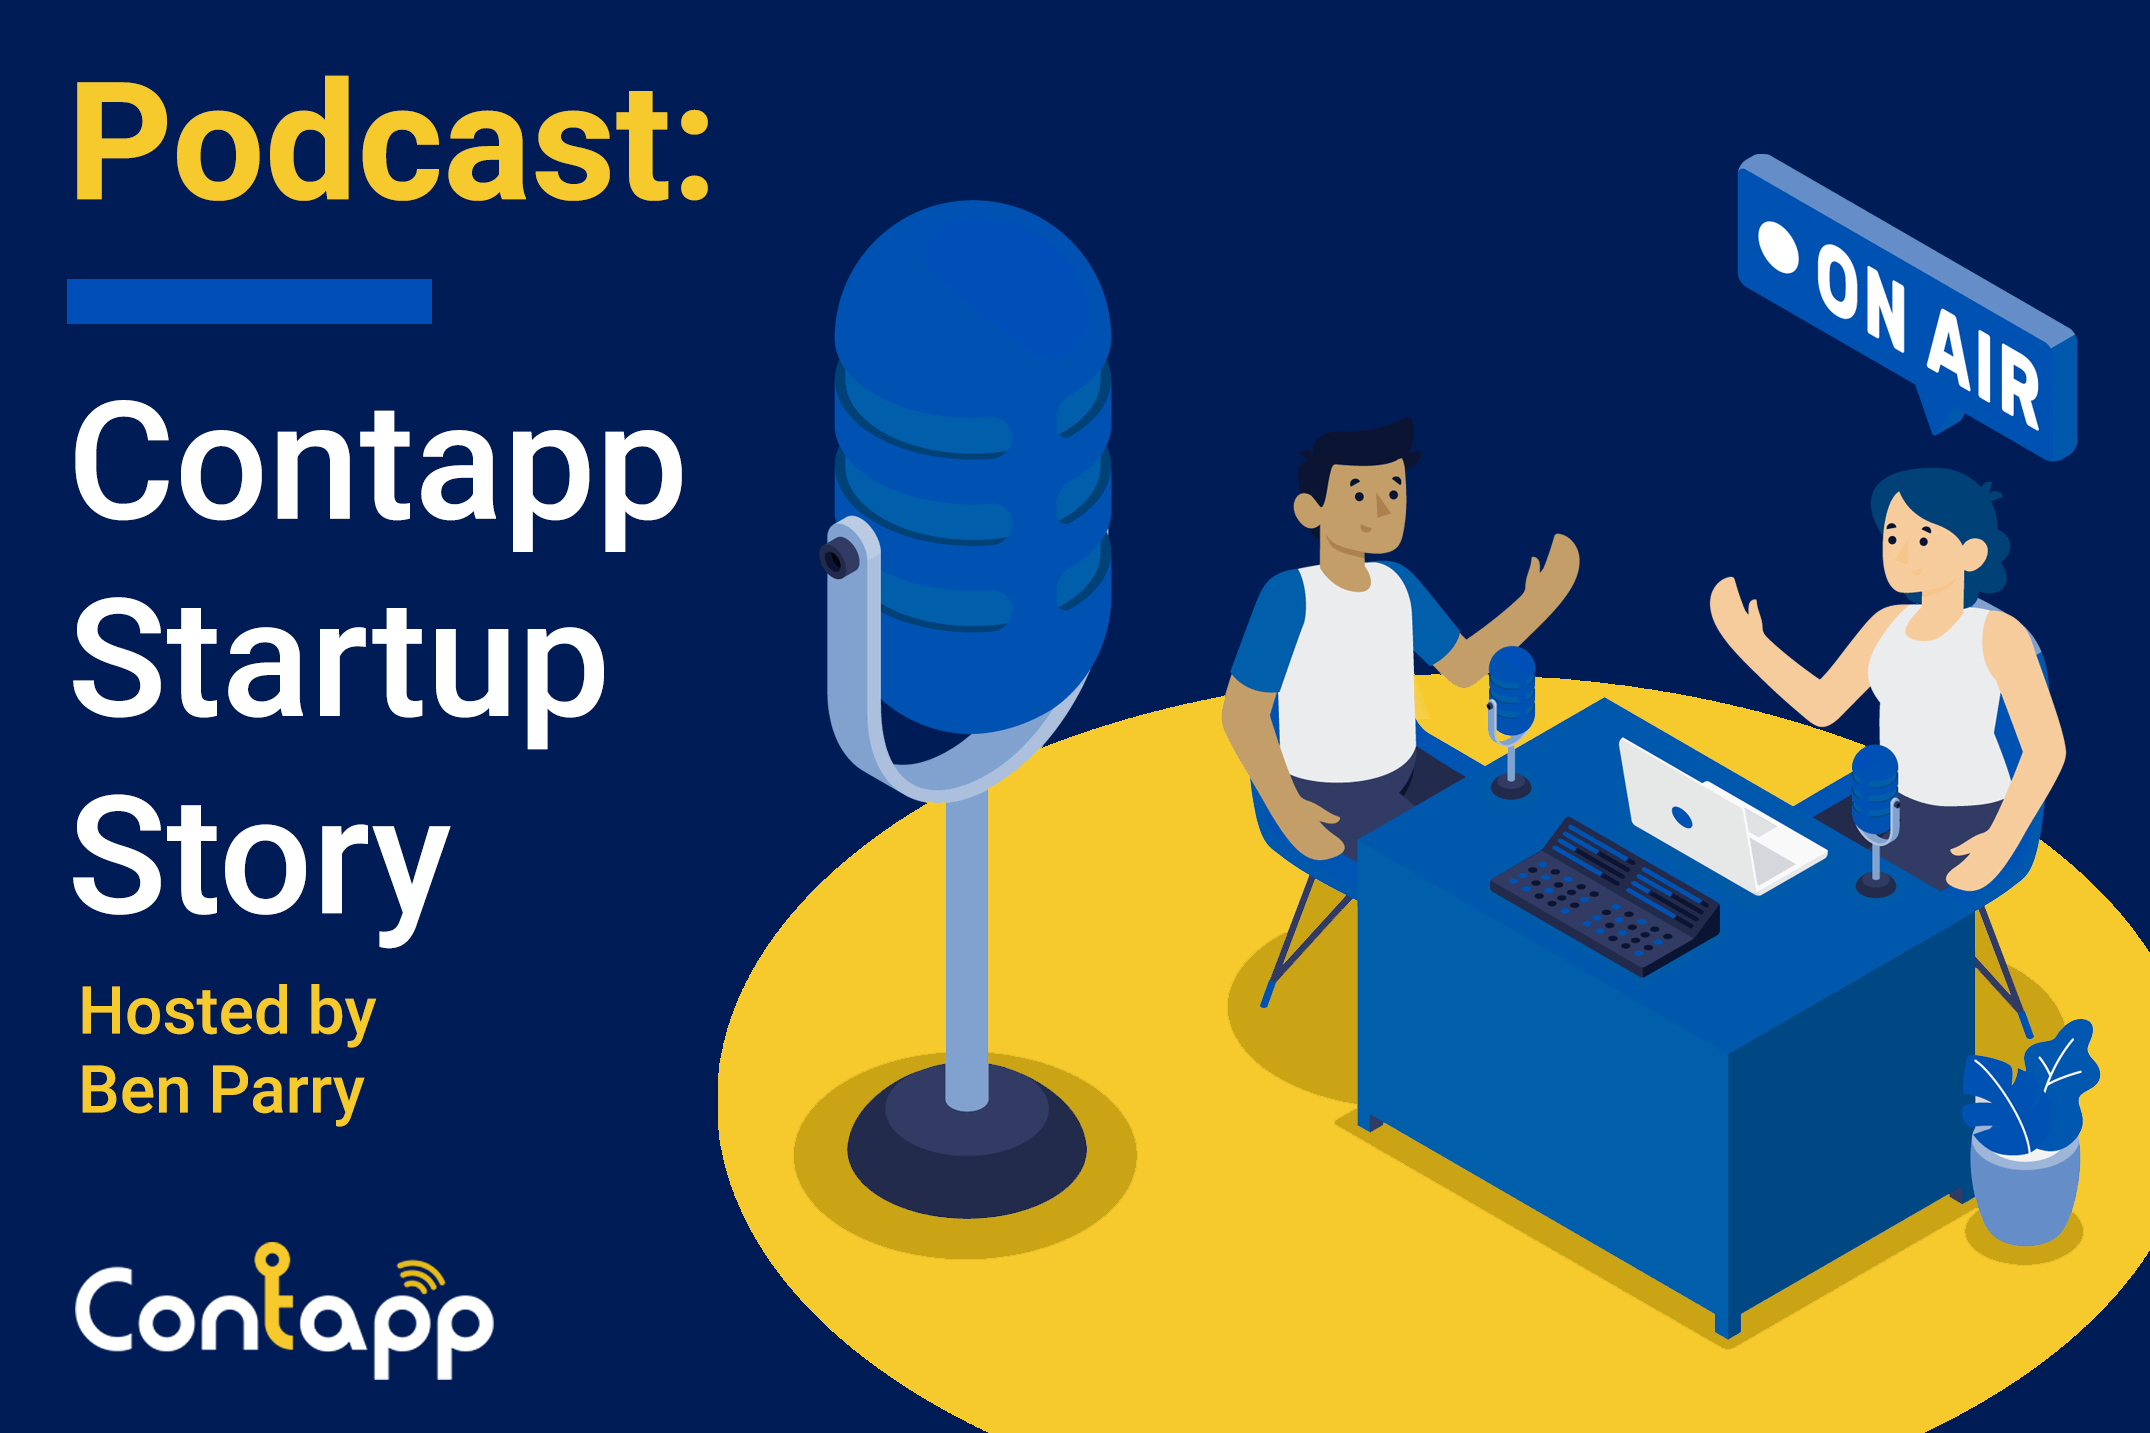 Contapp startup story podcast